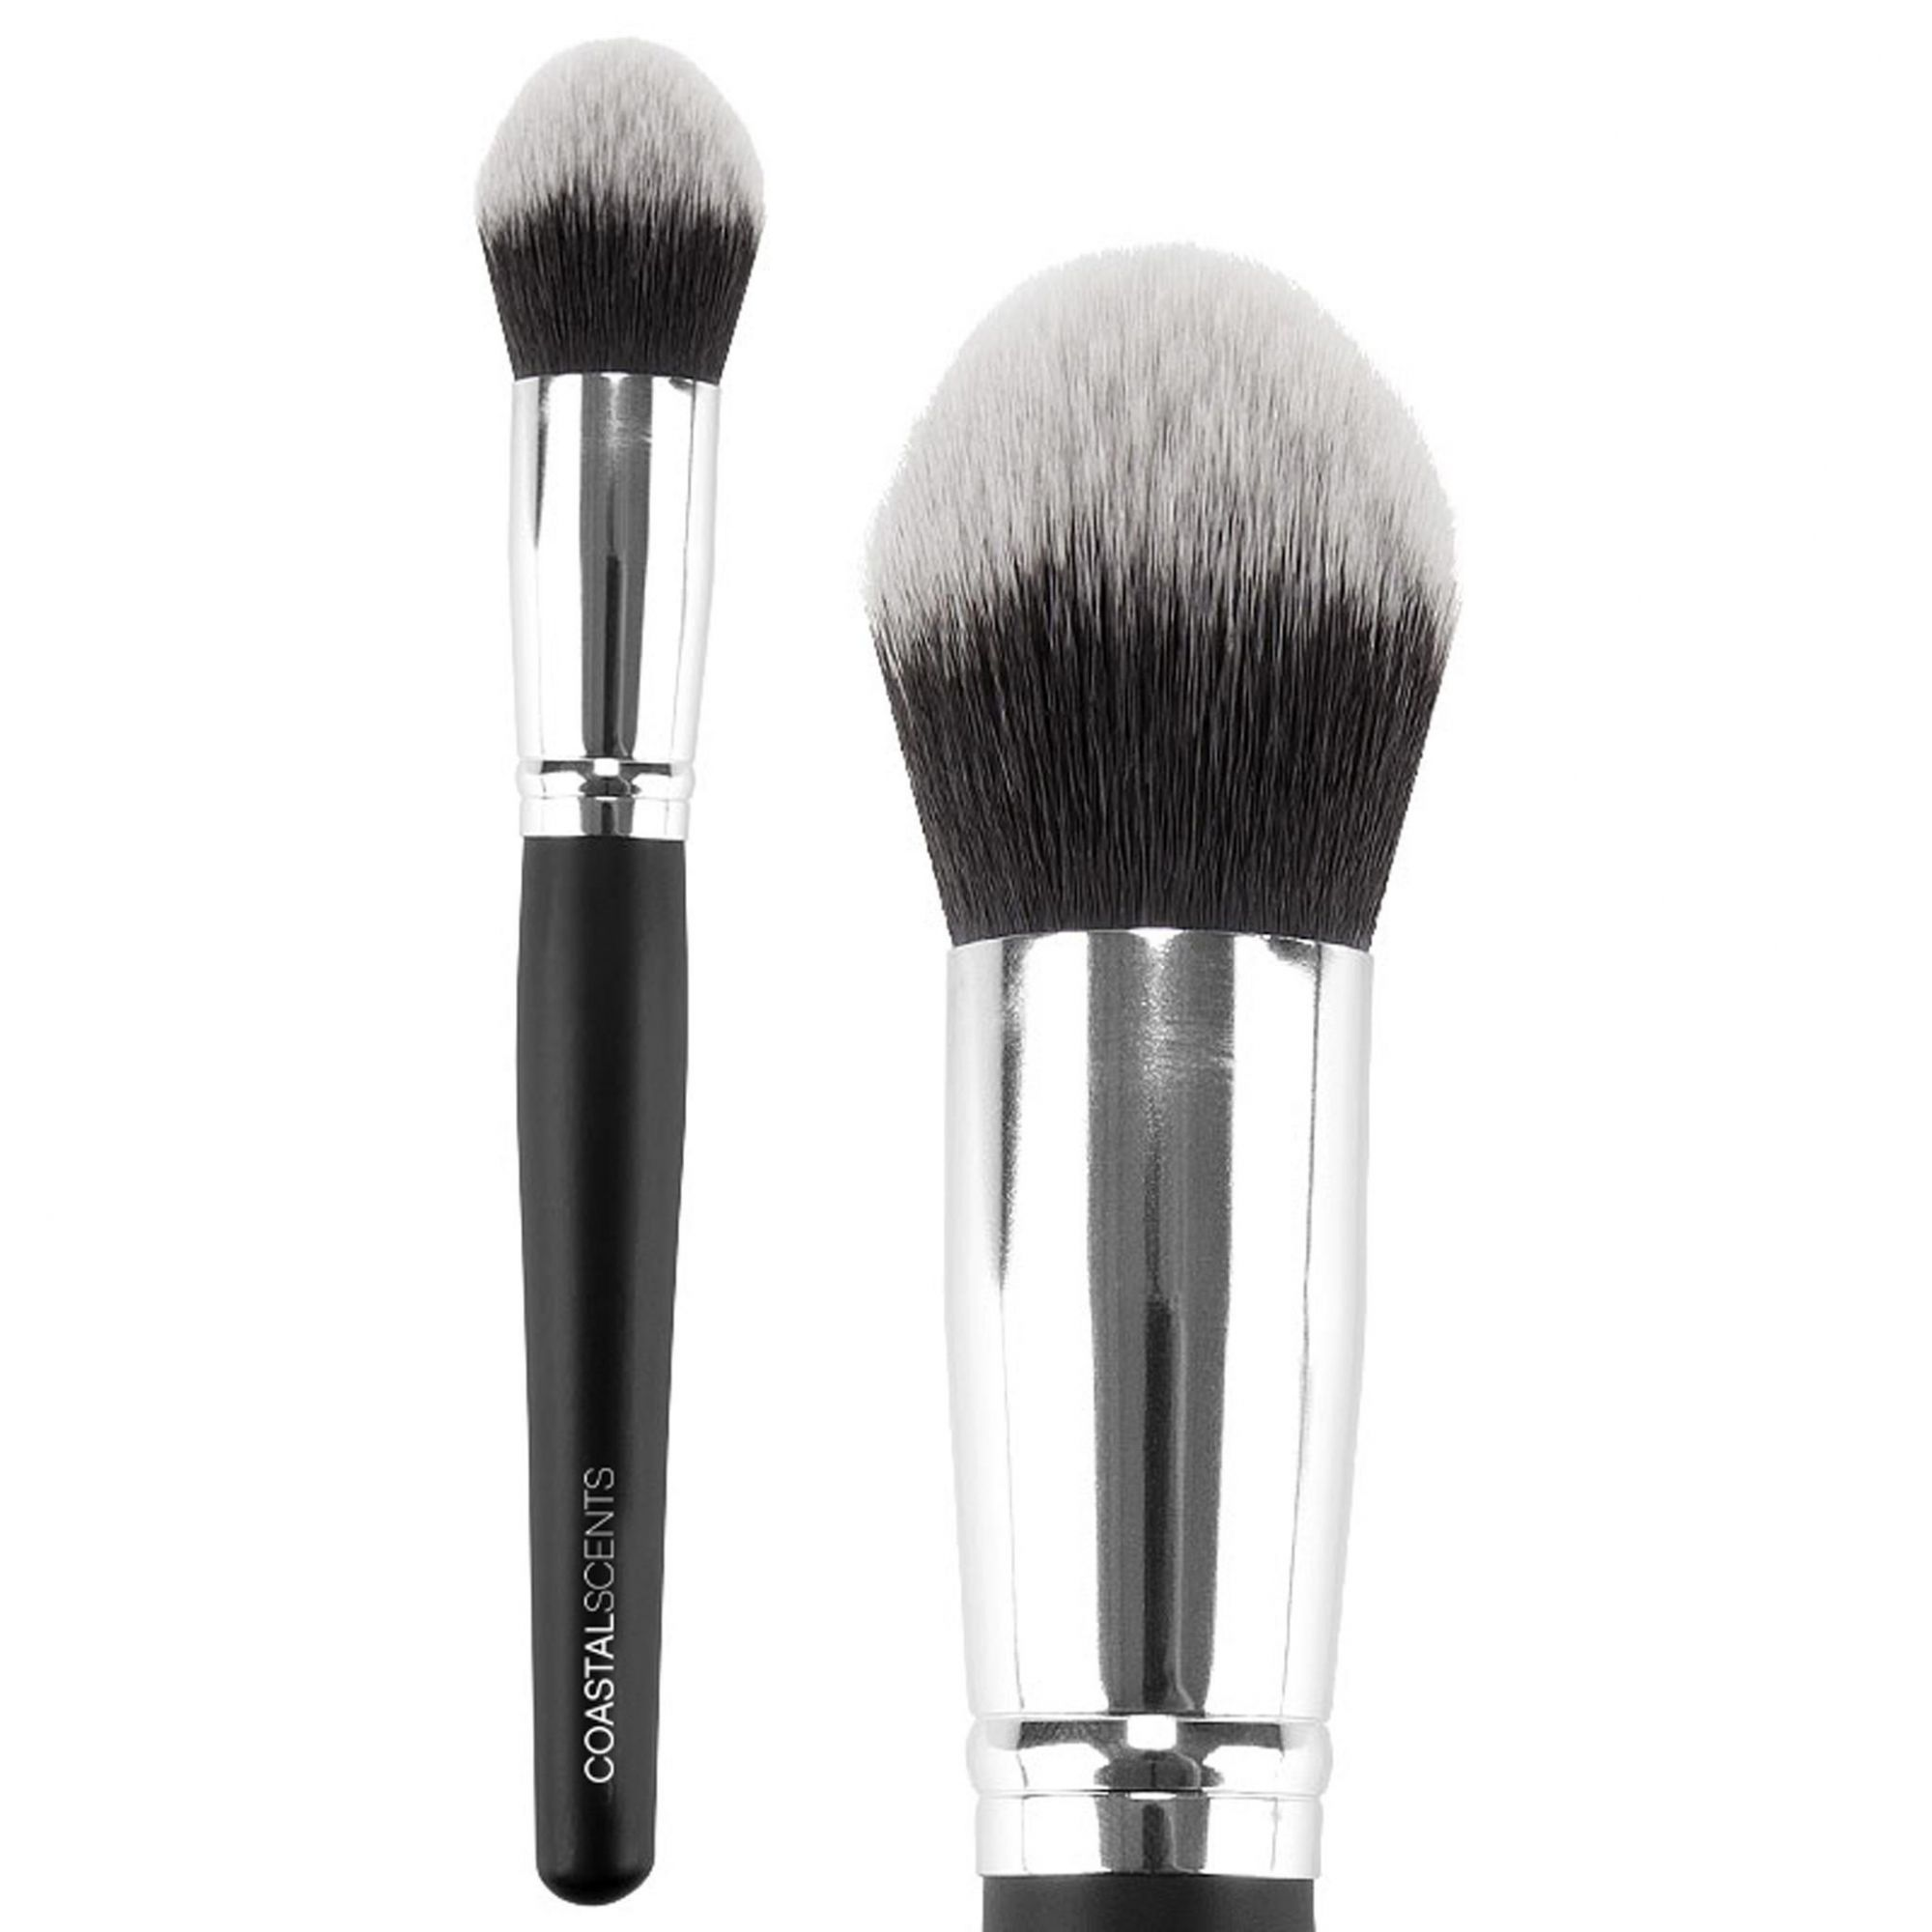 Coastal Scents  | S48 Classic Medium Tapered Powder Brush Synthetic